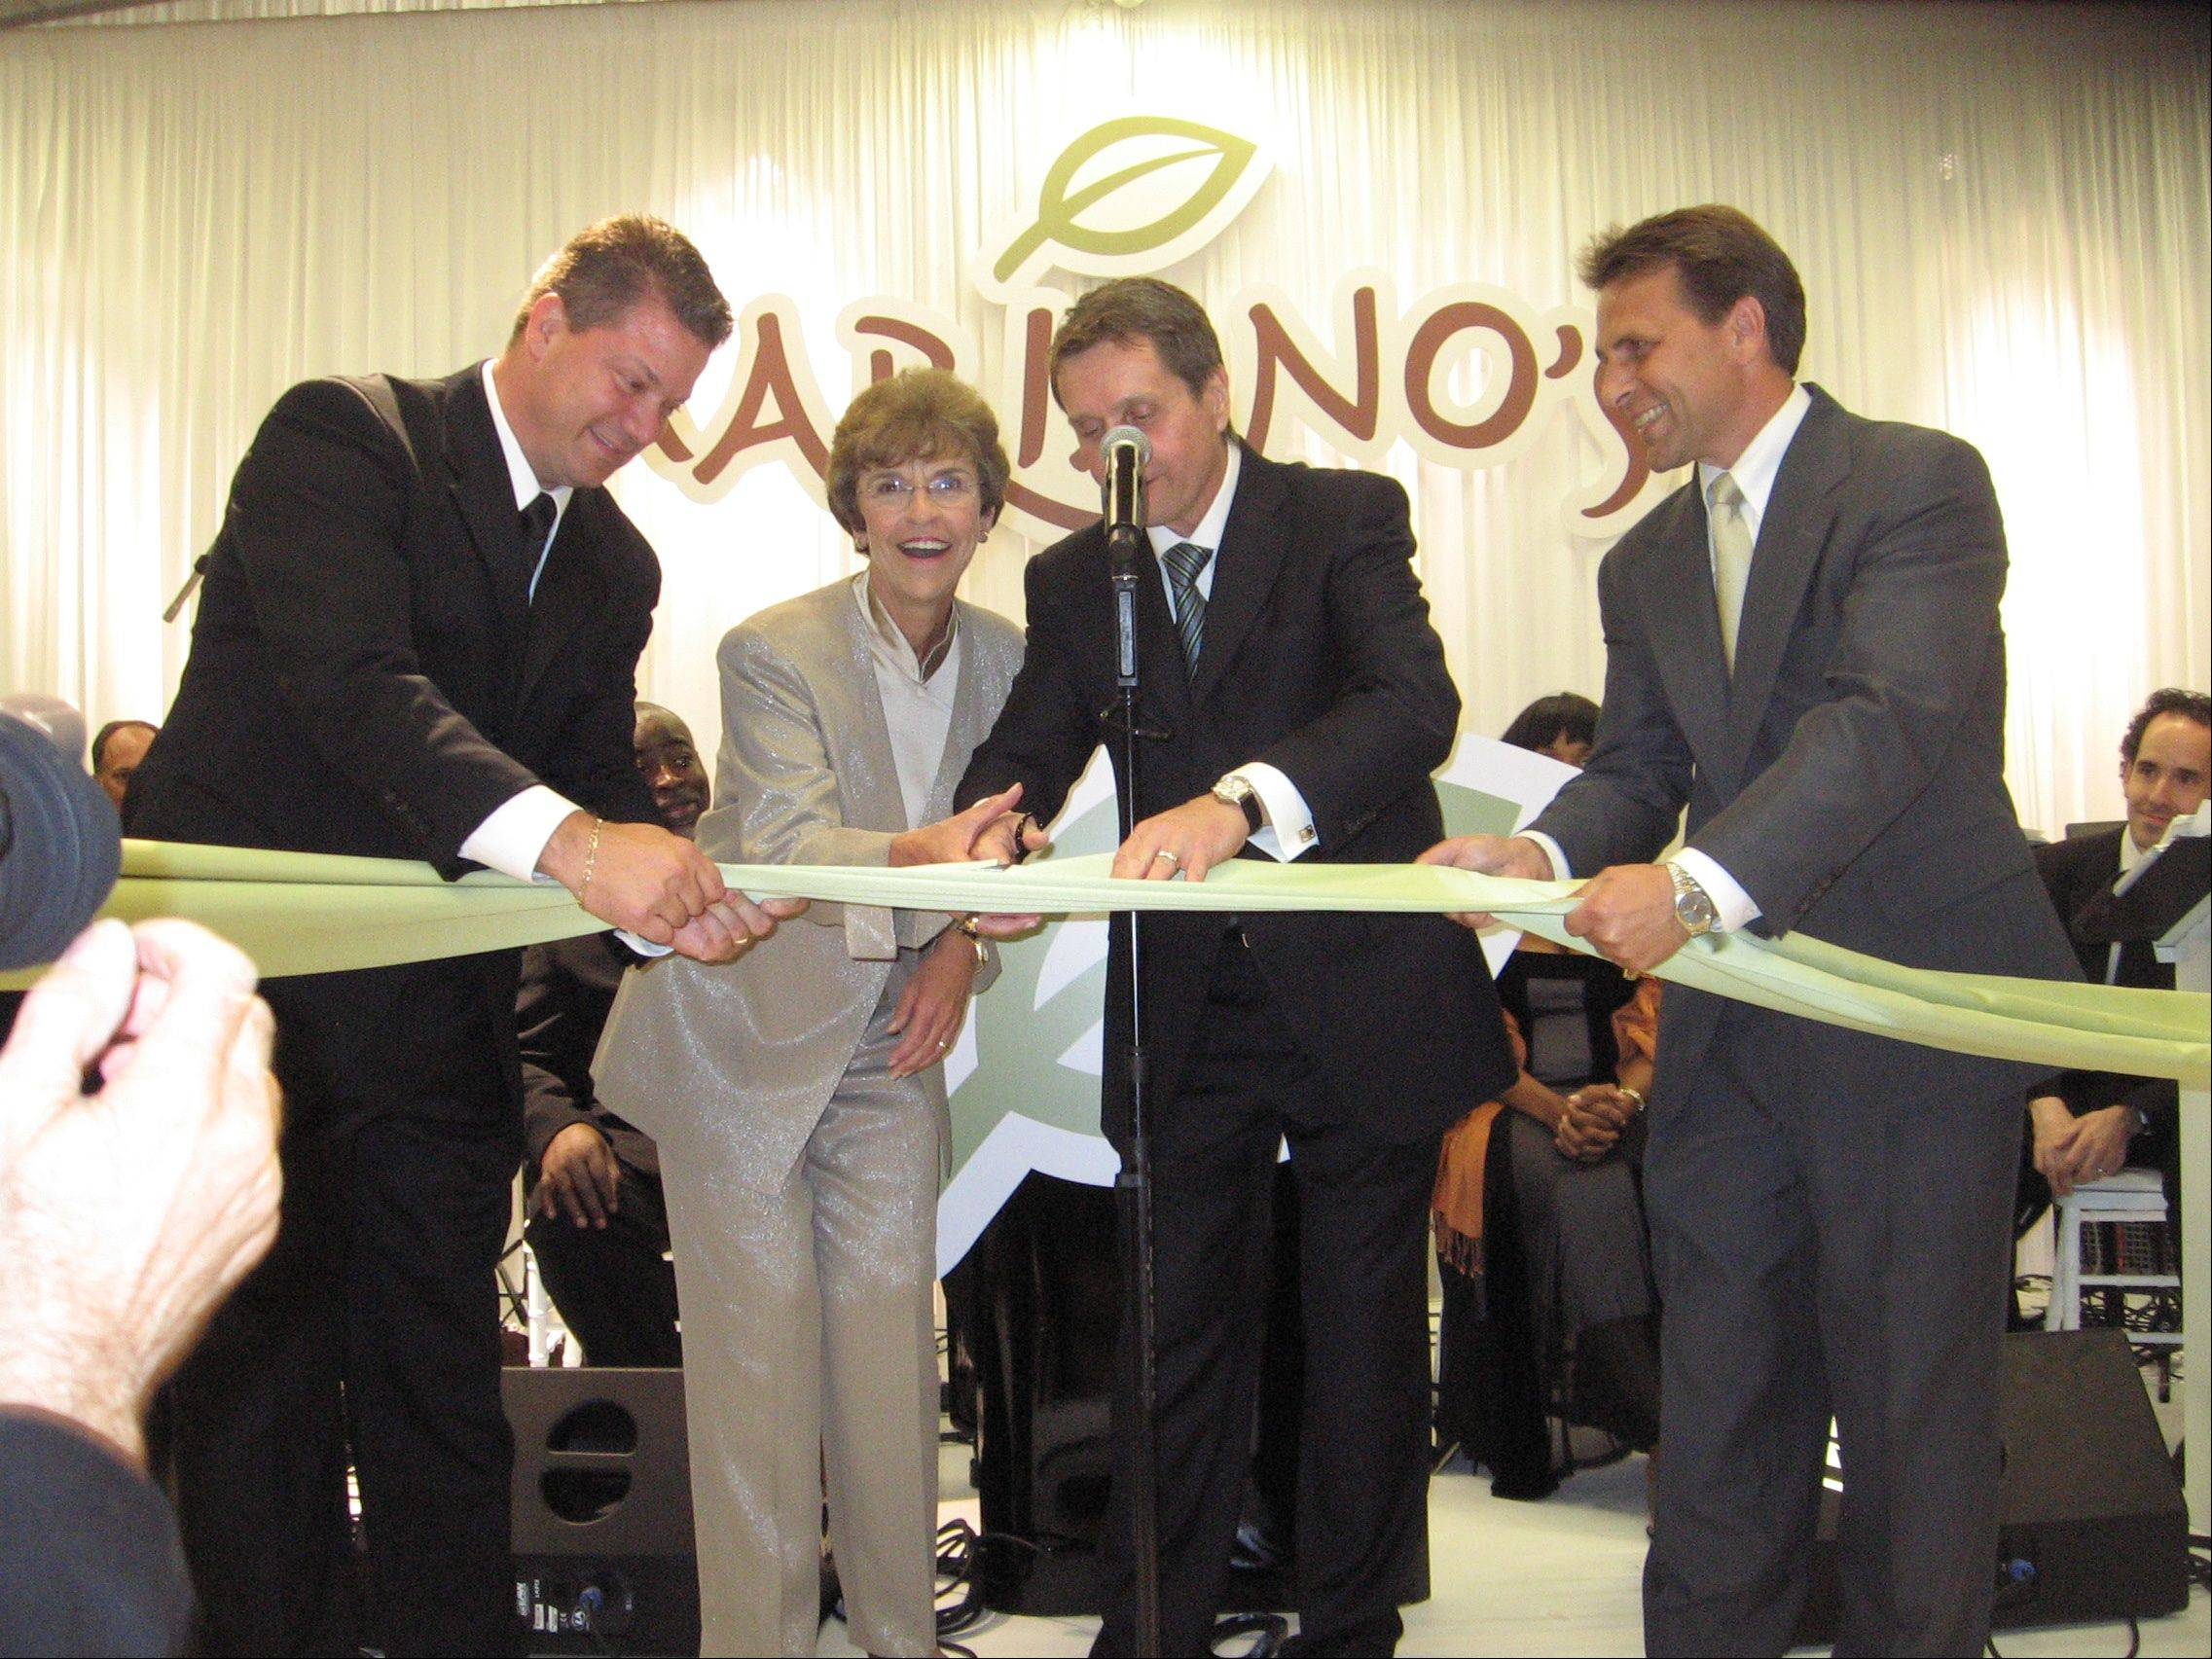 The opening of Mariano's Fresh Market on July 19, 2010 is celebrated by, from left: store Co-Director Greg Vengrin; Village President Arlene Mulder; Mariano's Chairman Bob Mariano, and store Co-Director Ken Szymanski.